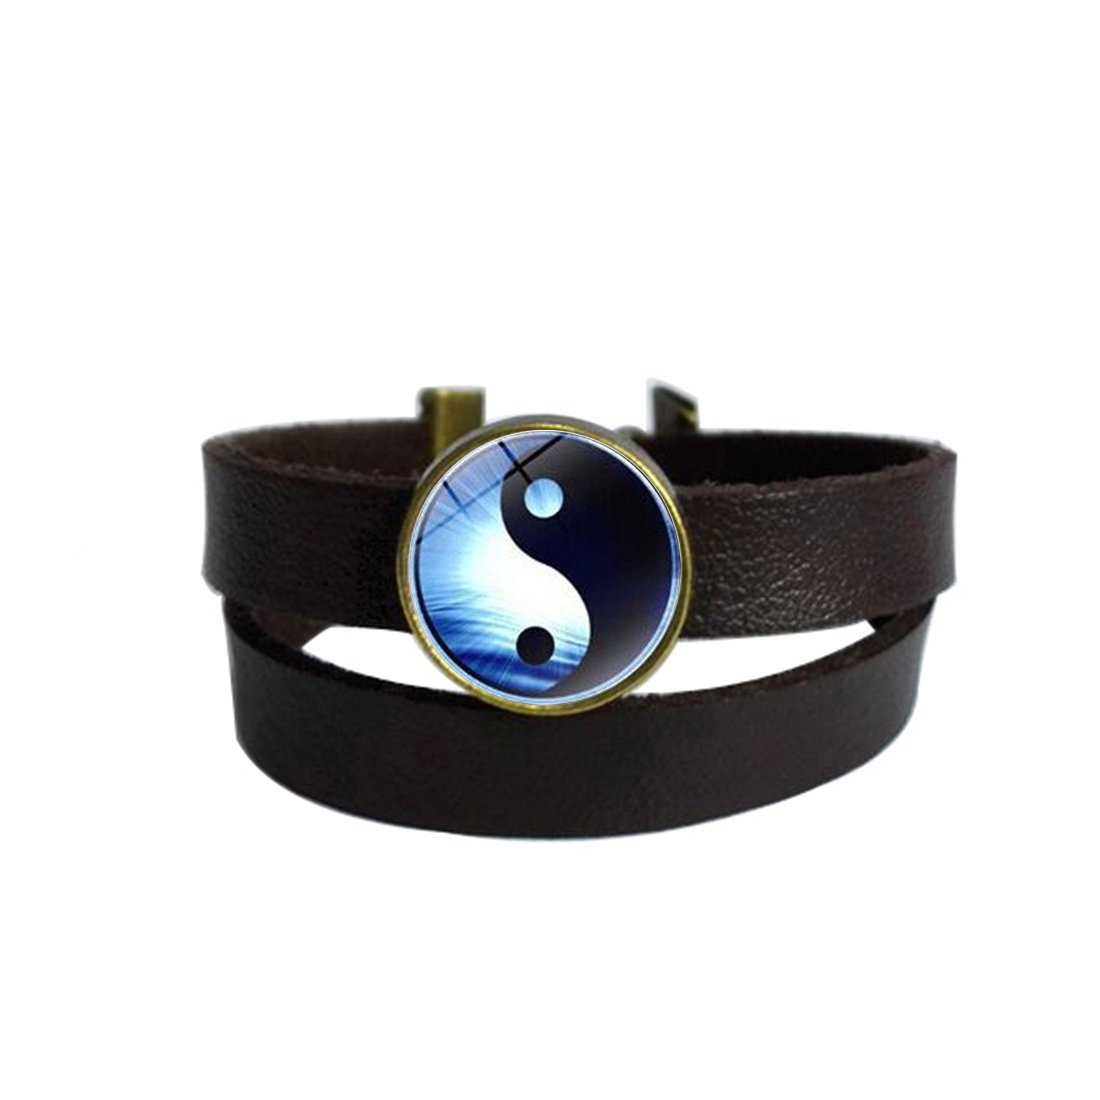 LooPoP Vintage Punk Dark Brown Leather Bracelet Yin Yang Tai Chi Belt Wrap Cuff Bangle Adjustable